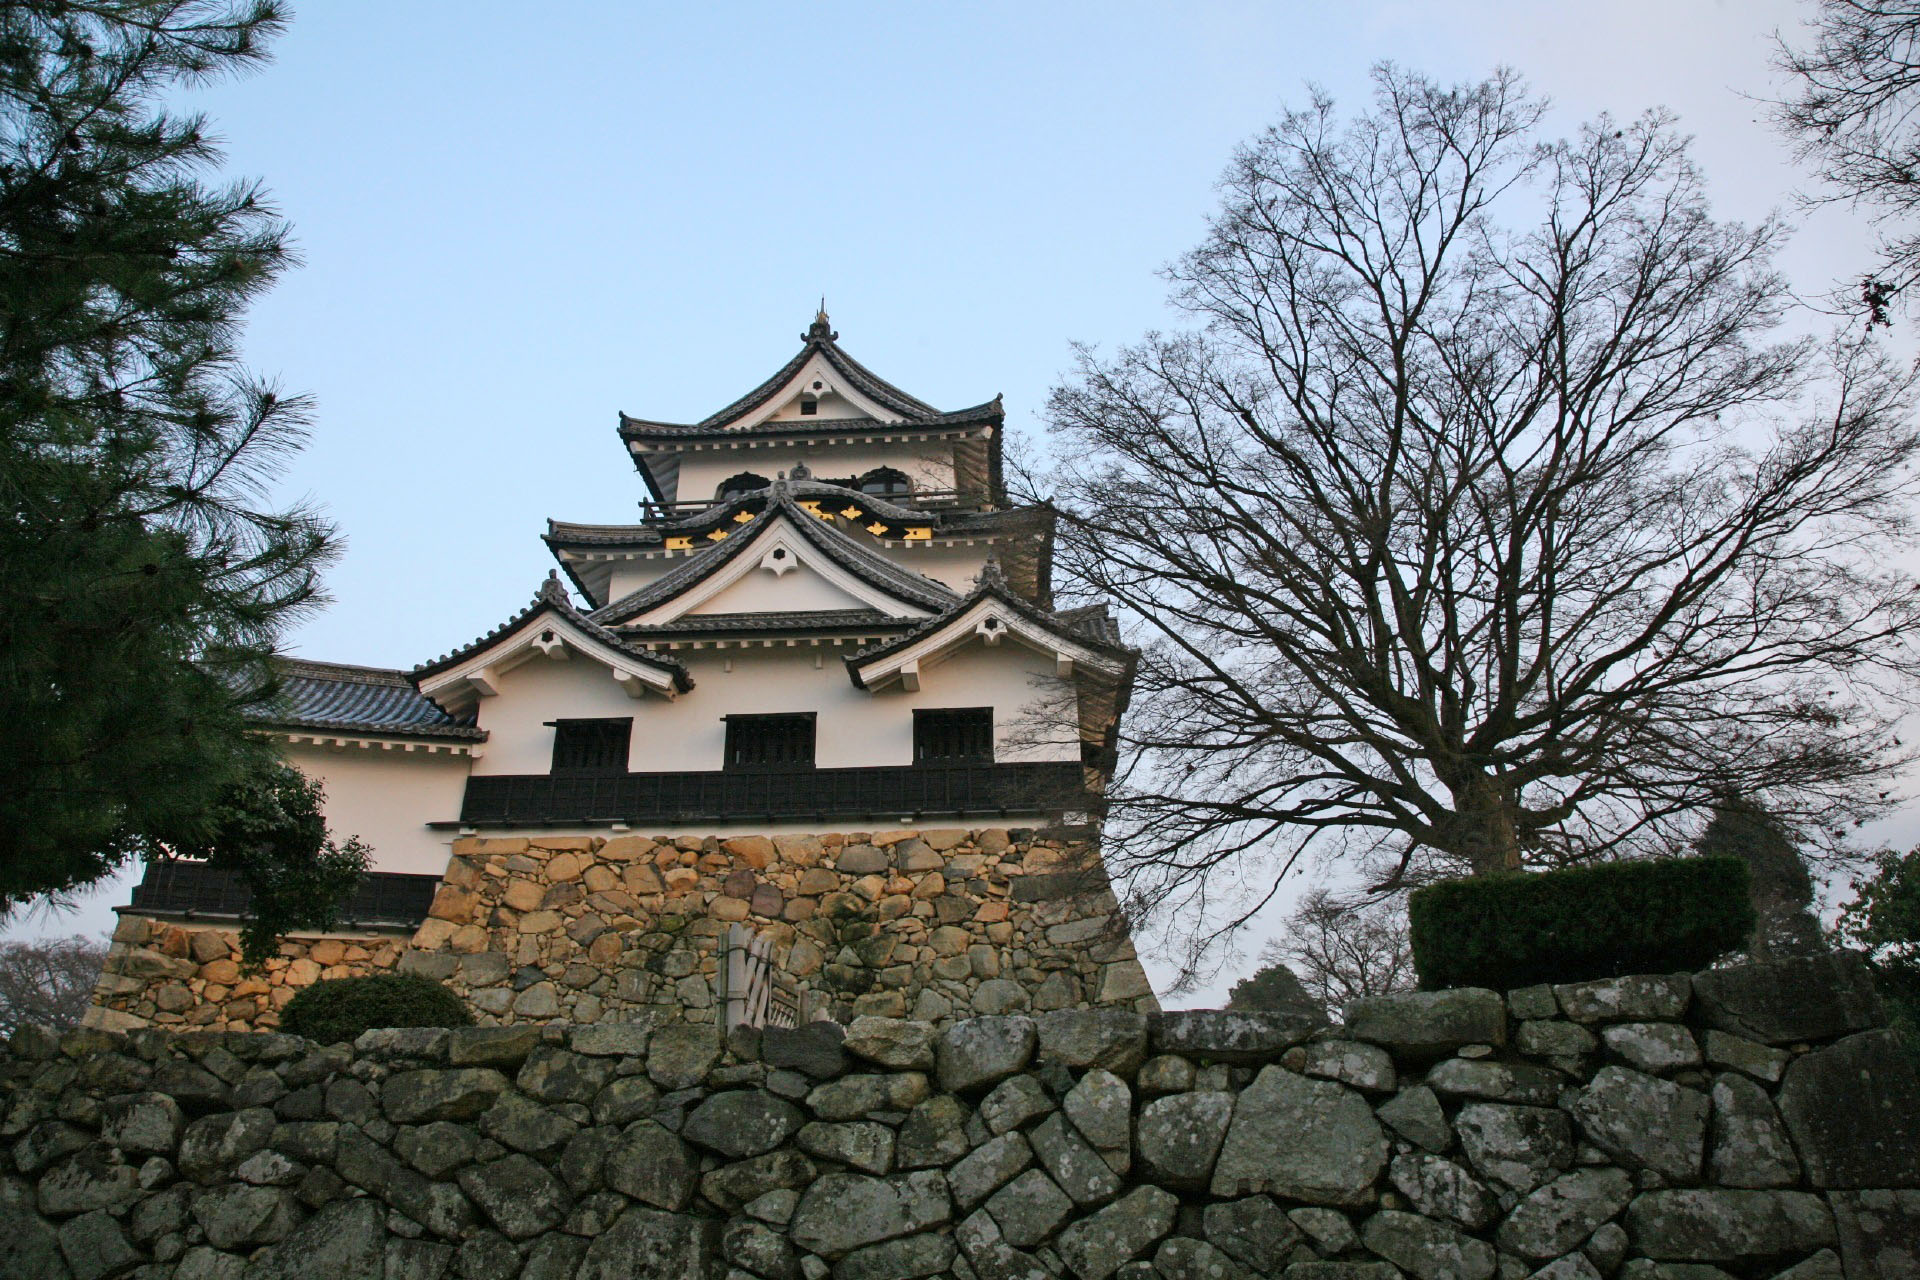 Hikone castle in Shiga, Japan